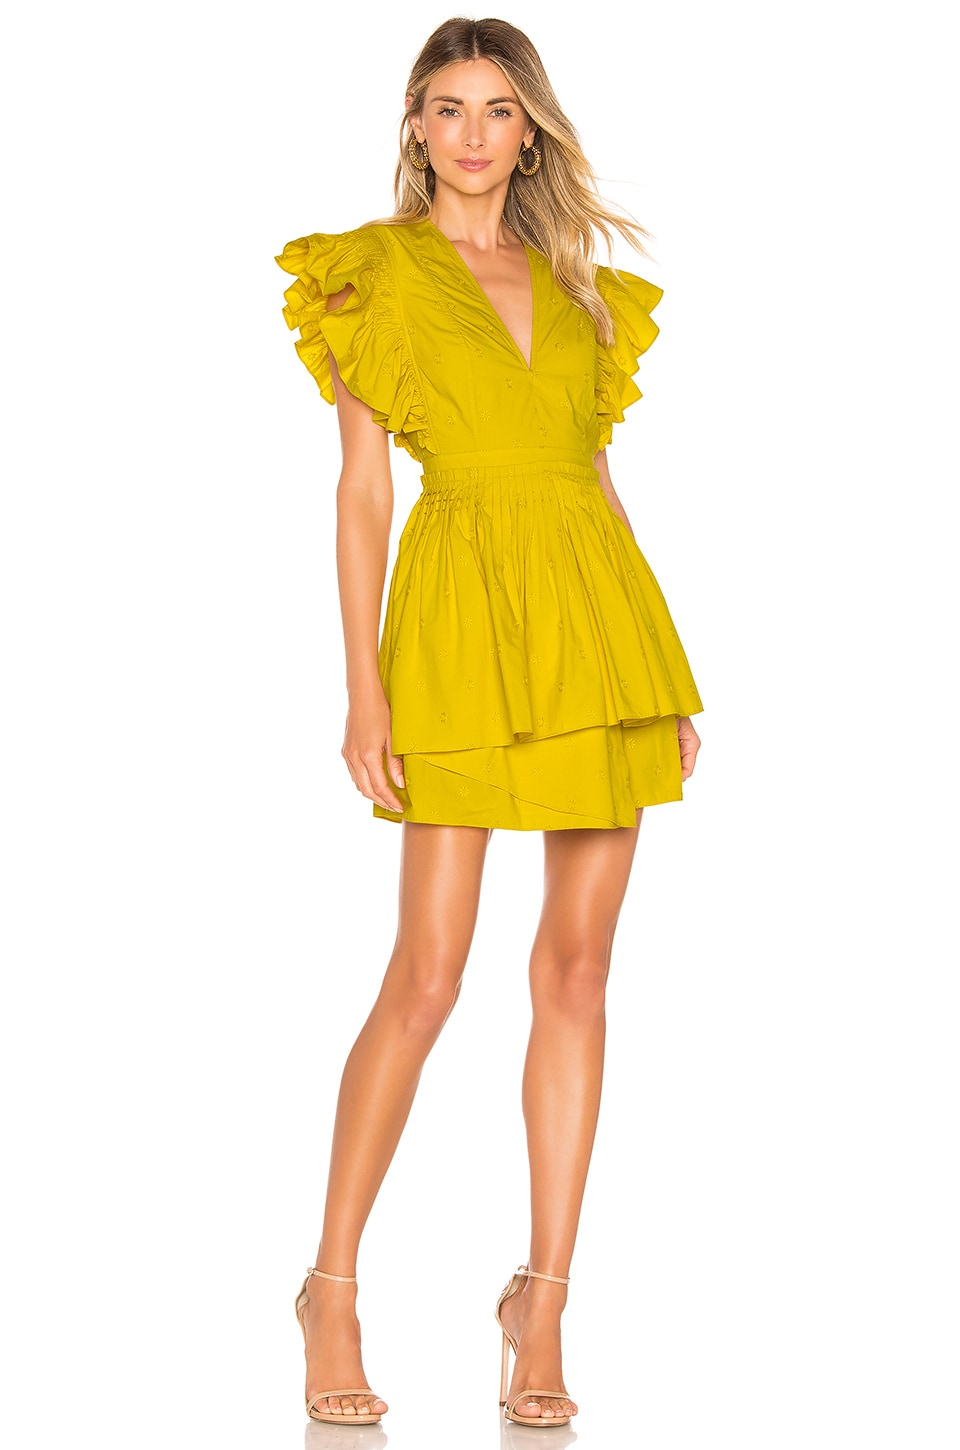 Ulla Johnson Tessa Dress in Chartreuse